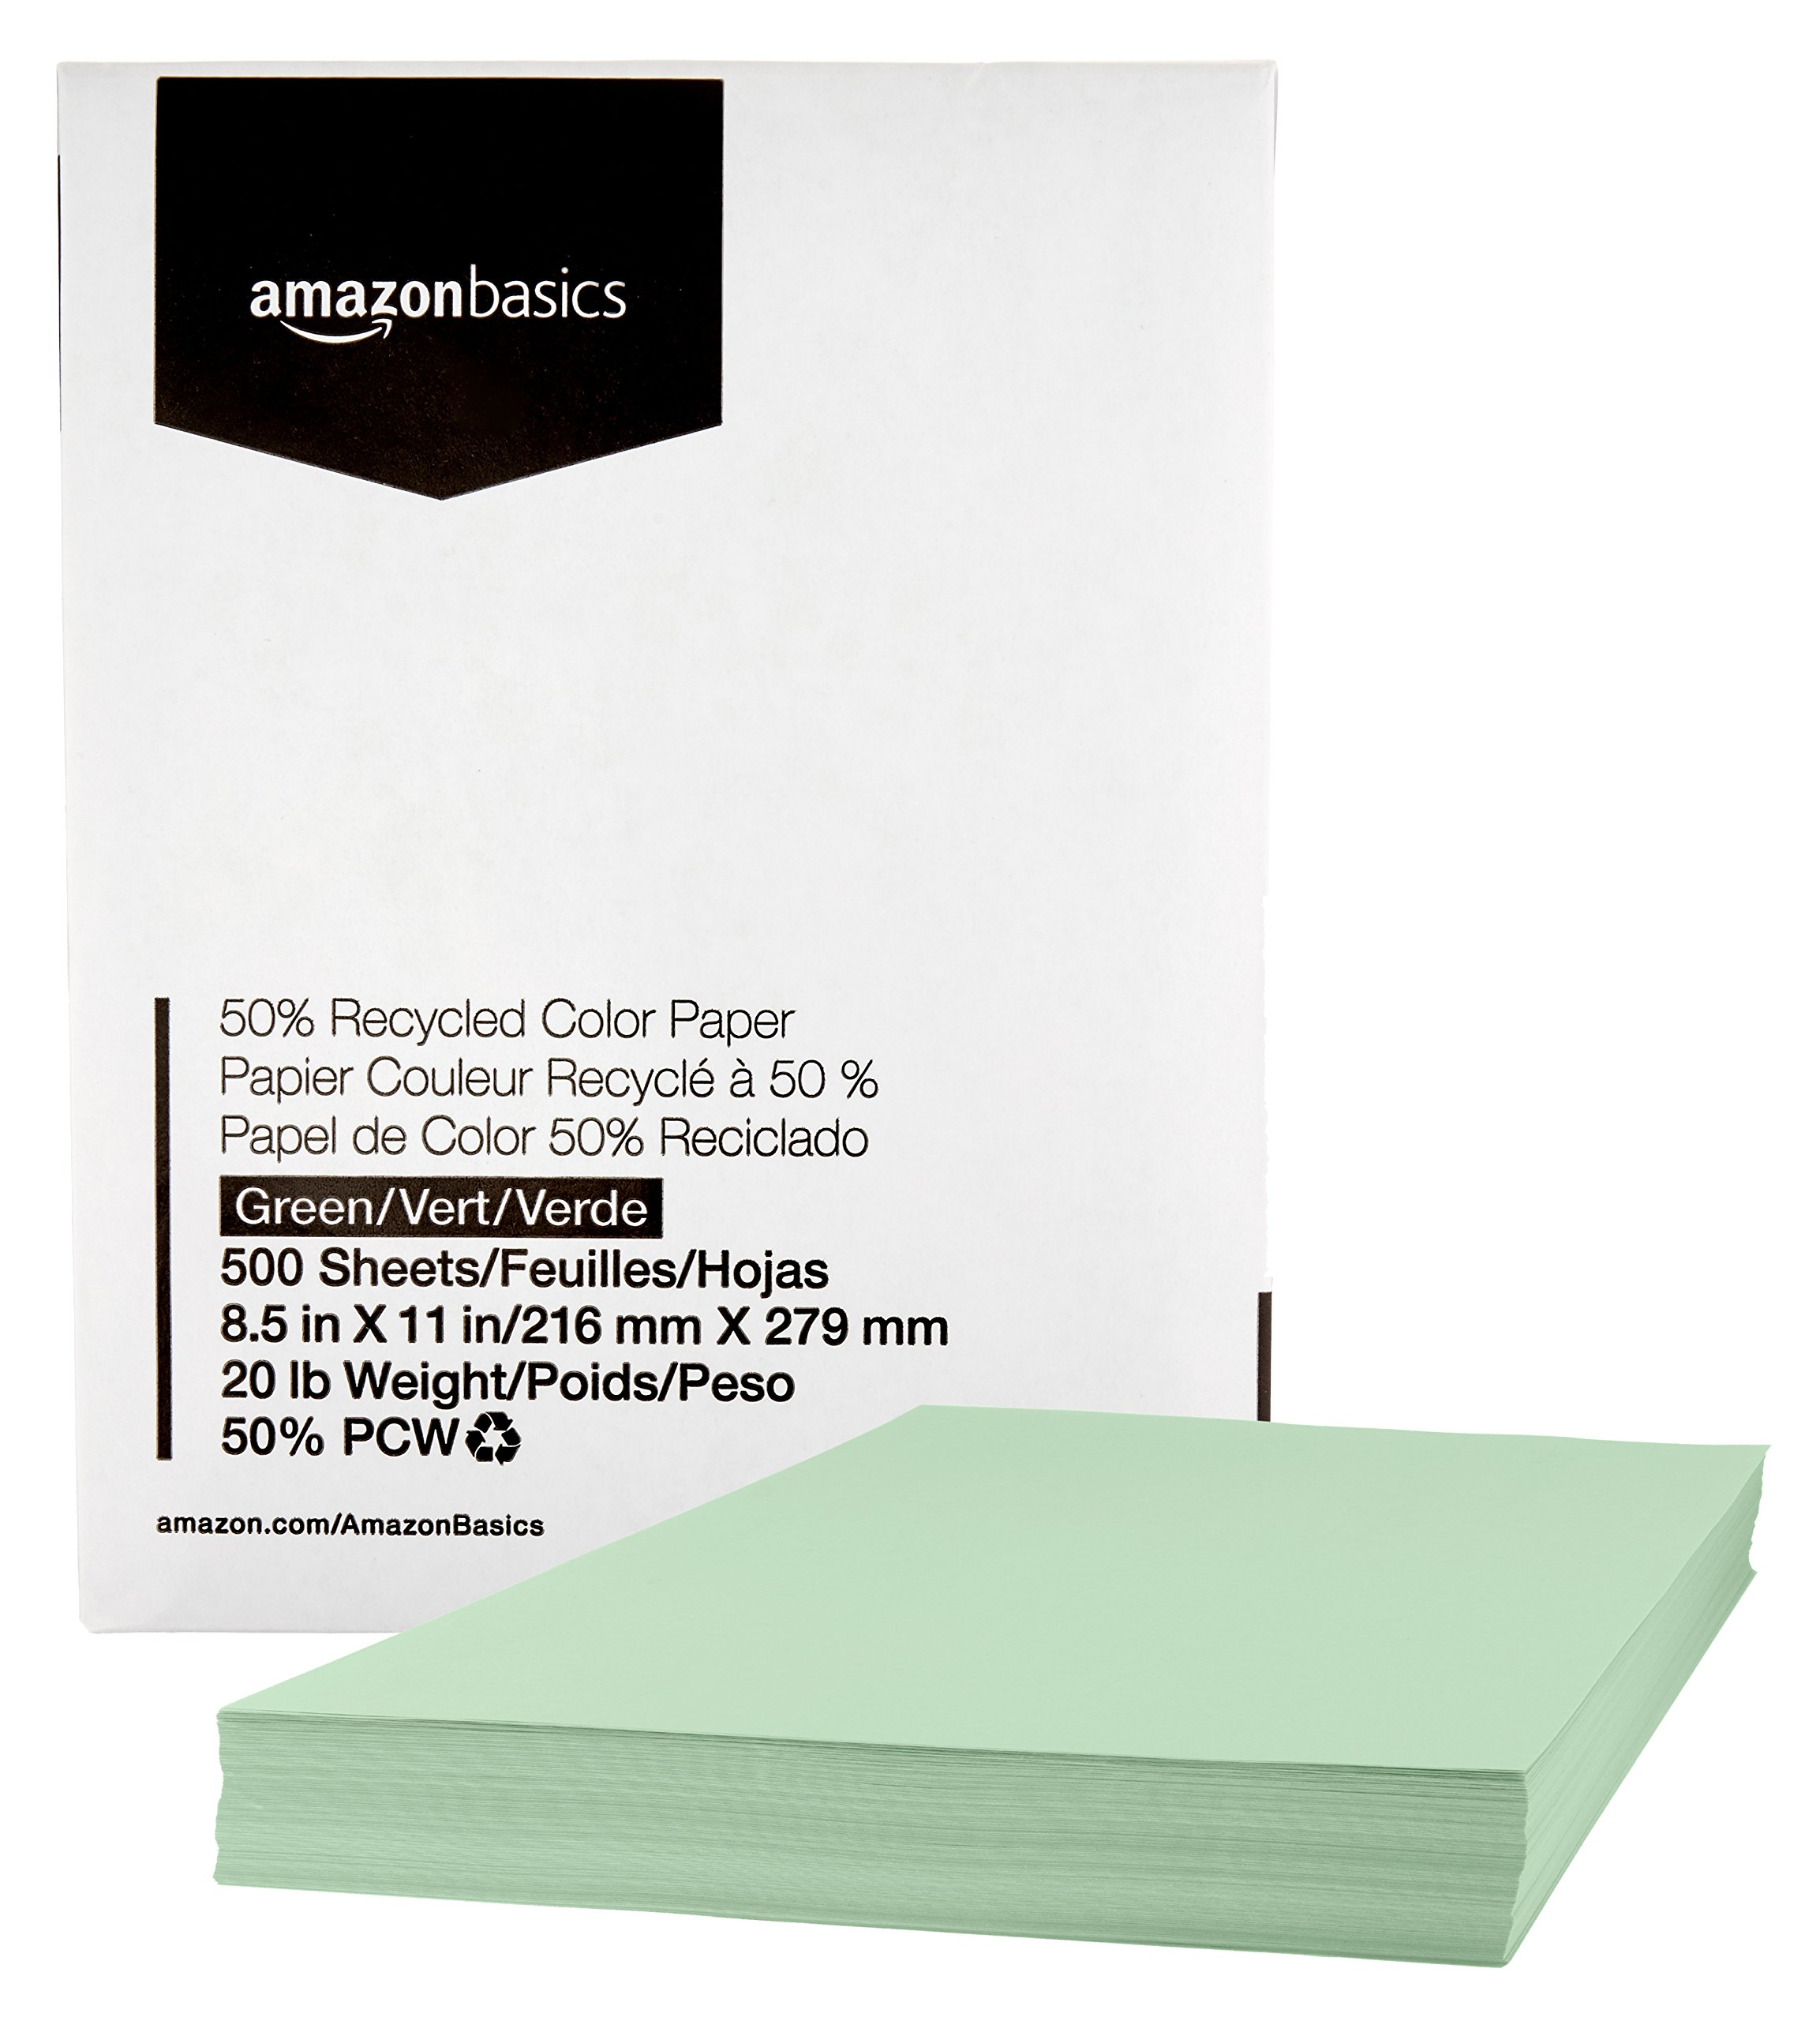 AmazonBasics 50% Recycled Color Printer Paper - Green, 8.5 x 11 Inches, 1 Ream (500 Sheets)